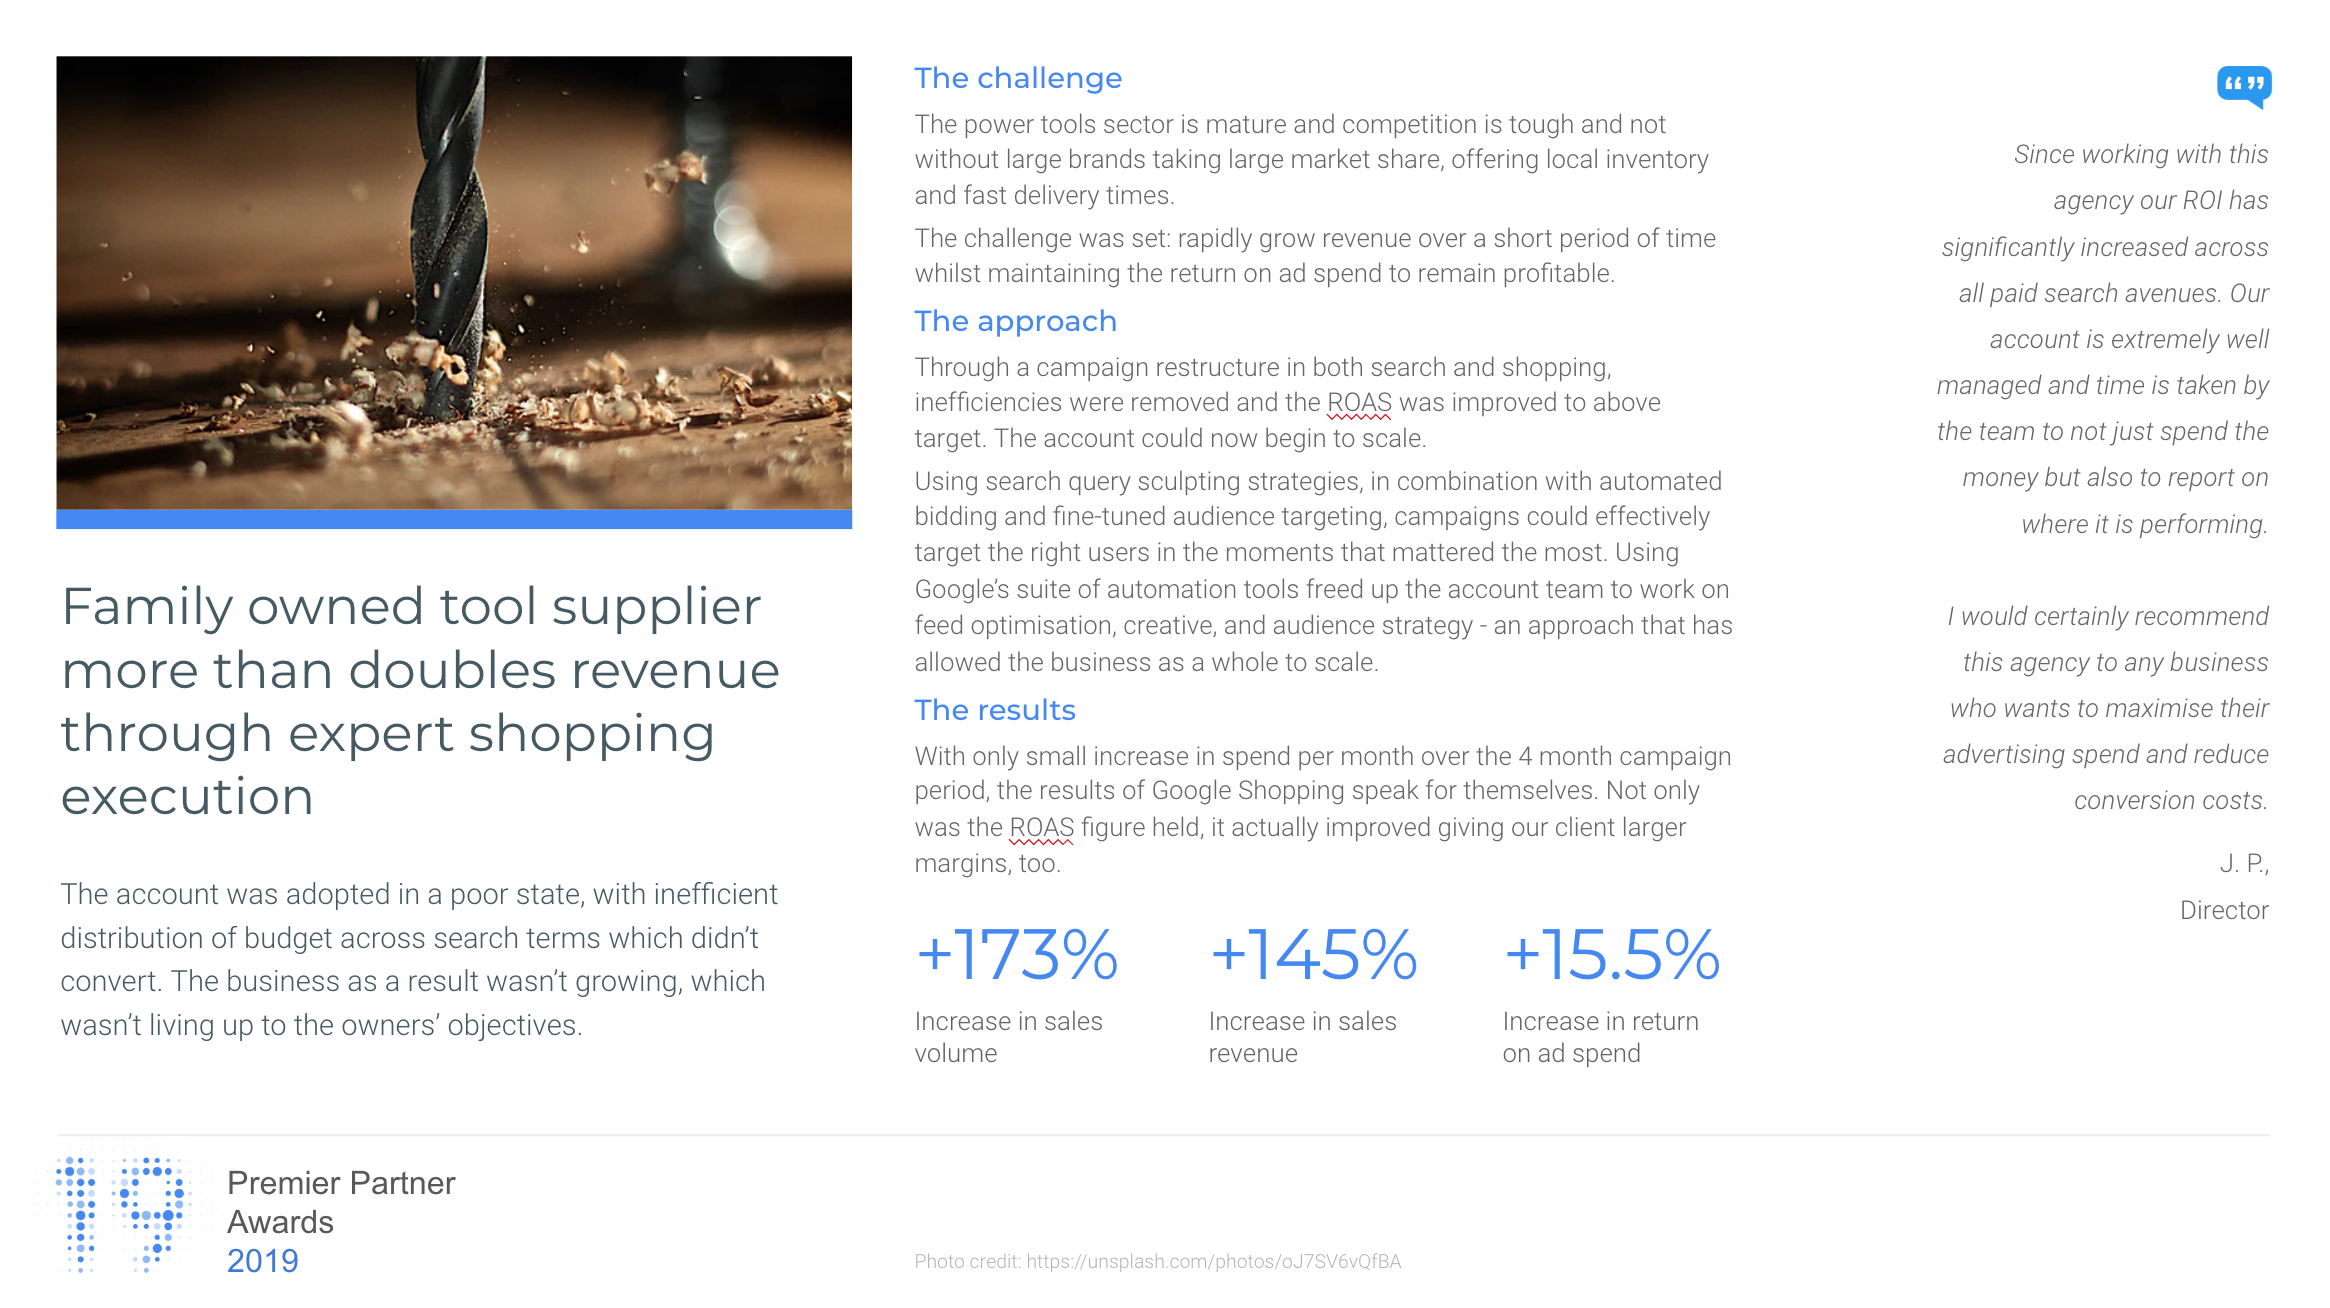 google shopping case study awards